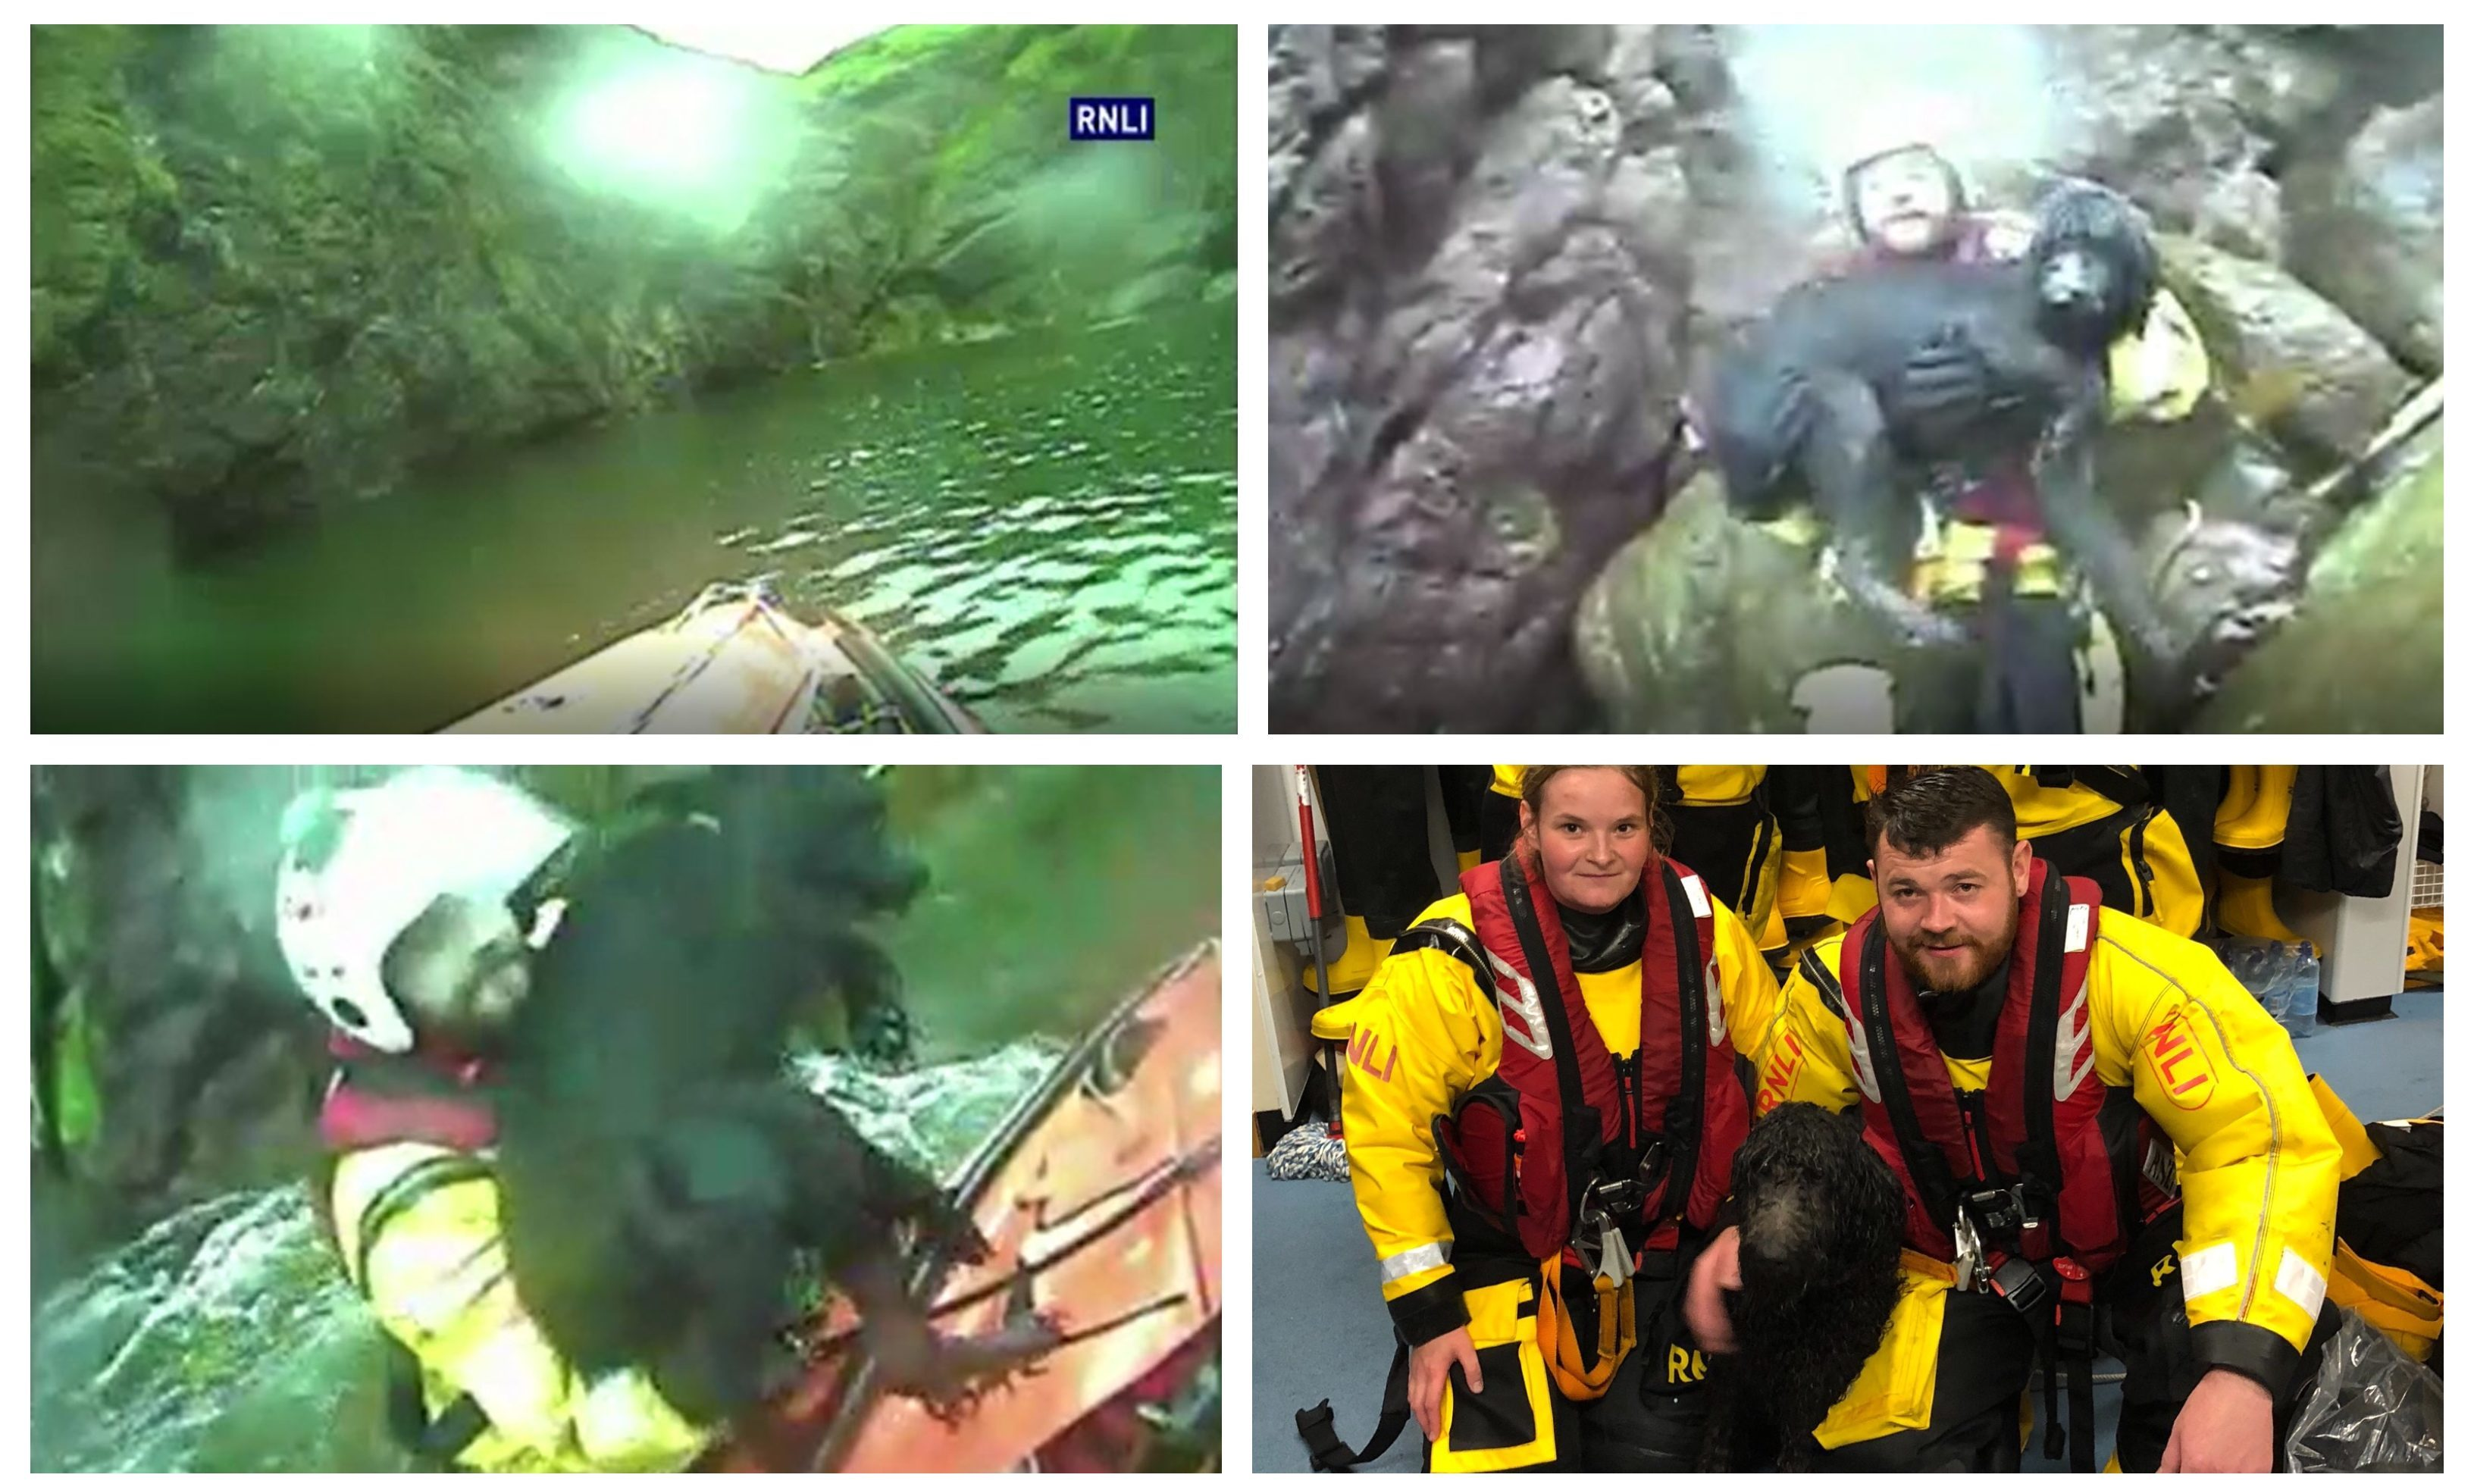 The rescue of Freya the dog by the RNLI crew at Eyemouth